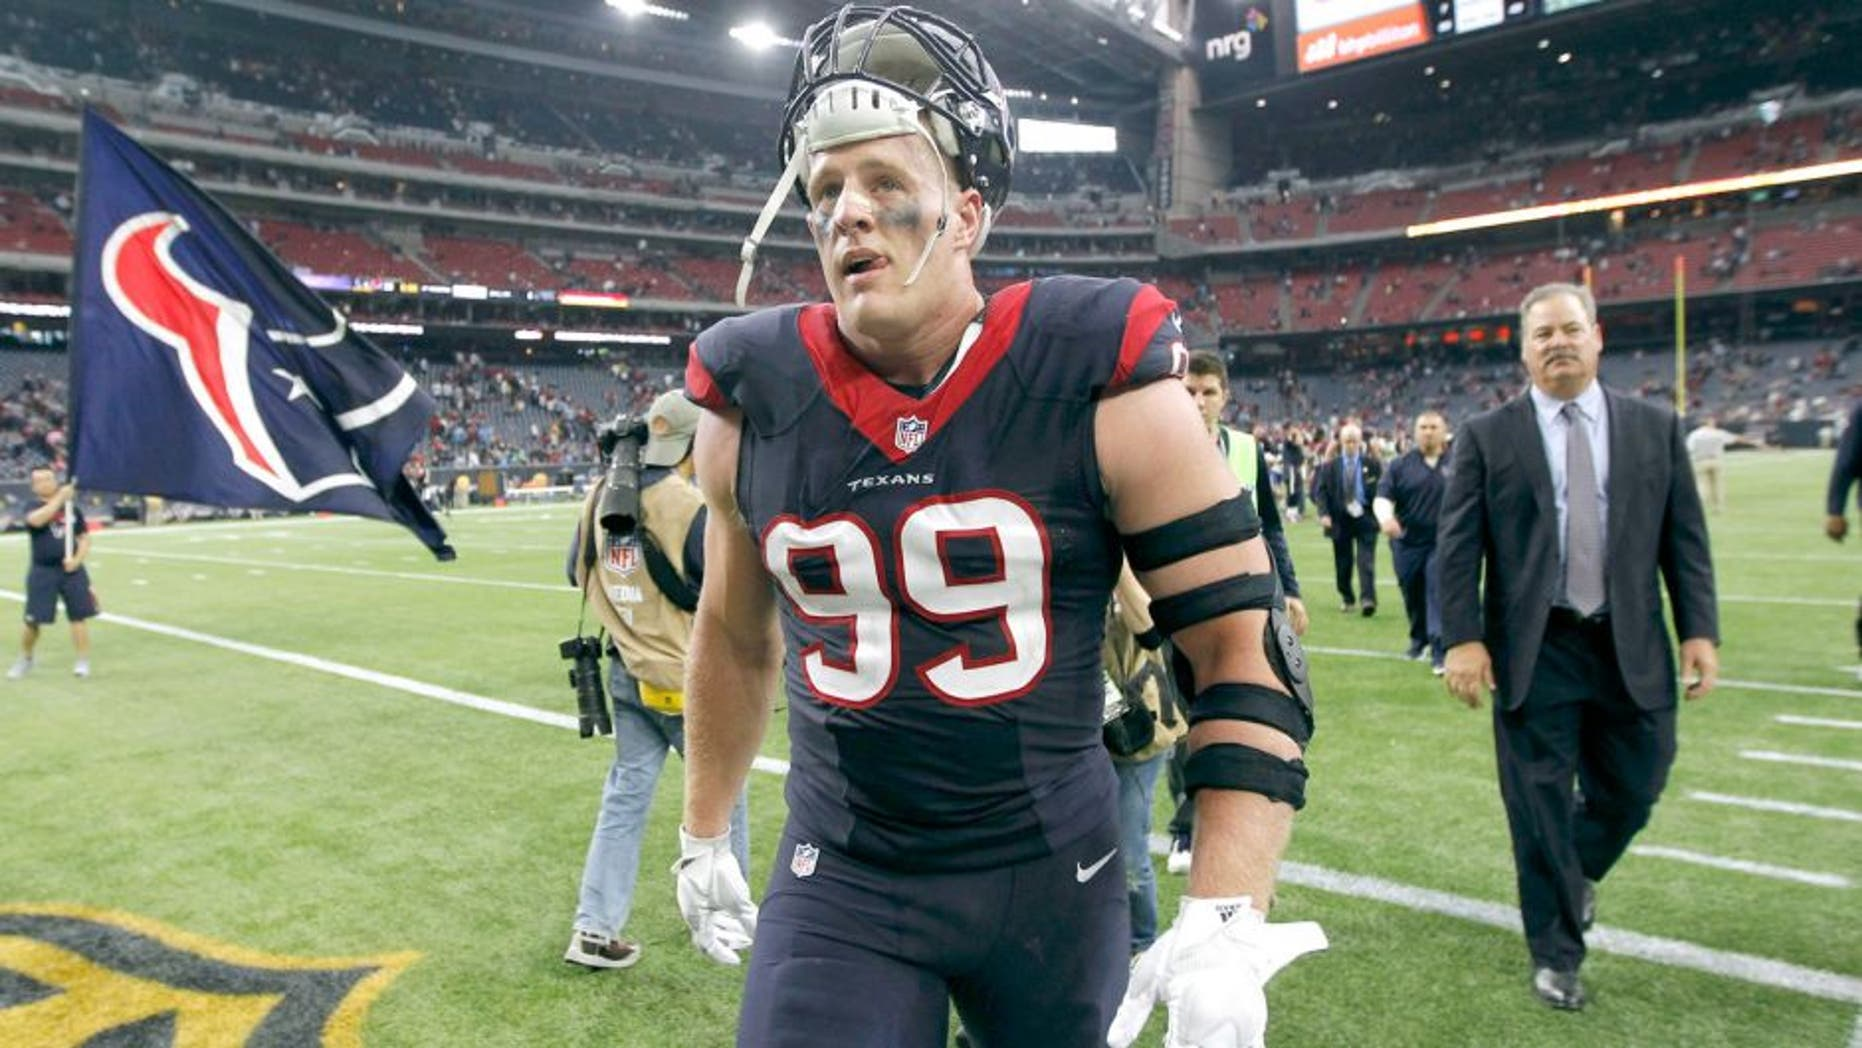 Nov 1, 2015; Houston, TX, USA; Houston Texans defensive end J.J. Watt (99) leaves the field after beating the Tennessee Titans 20-6 at NRG Stadium. Mandatory Credit: Erich Schlegel-USA TODAY Sports